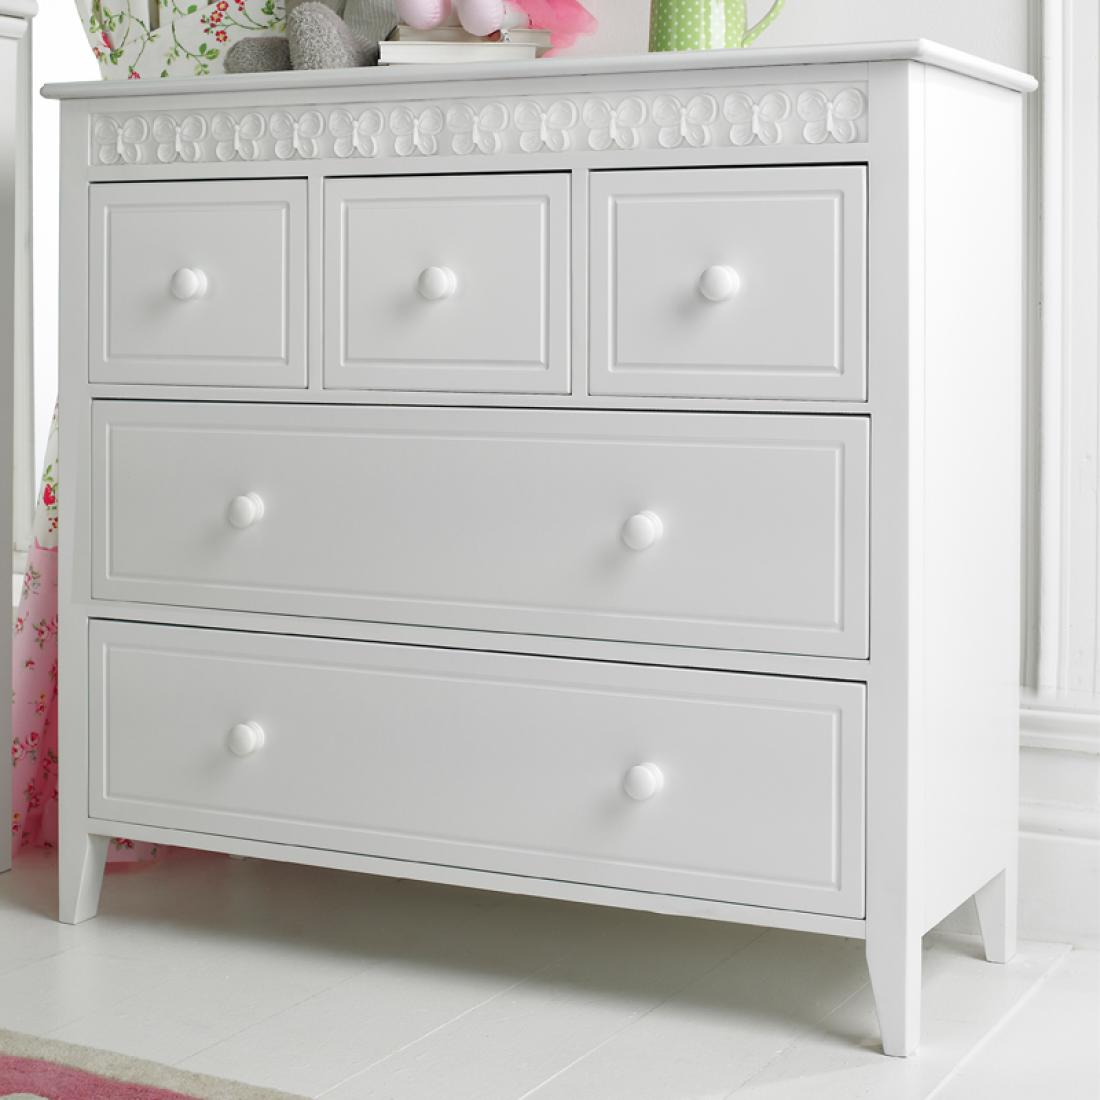 Florence flutterby 3 over 2 childrens chest of drawers for Fitted bedroom furniture 0 finance